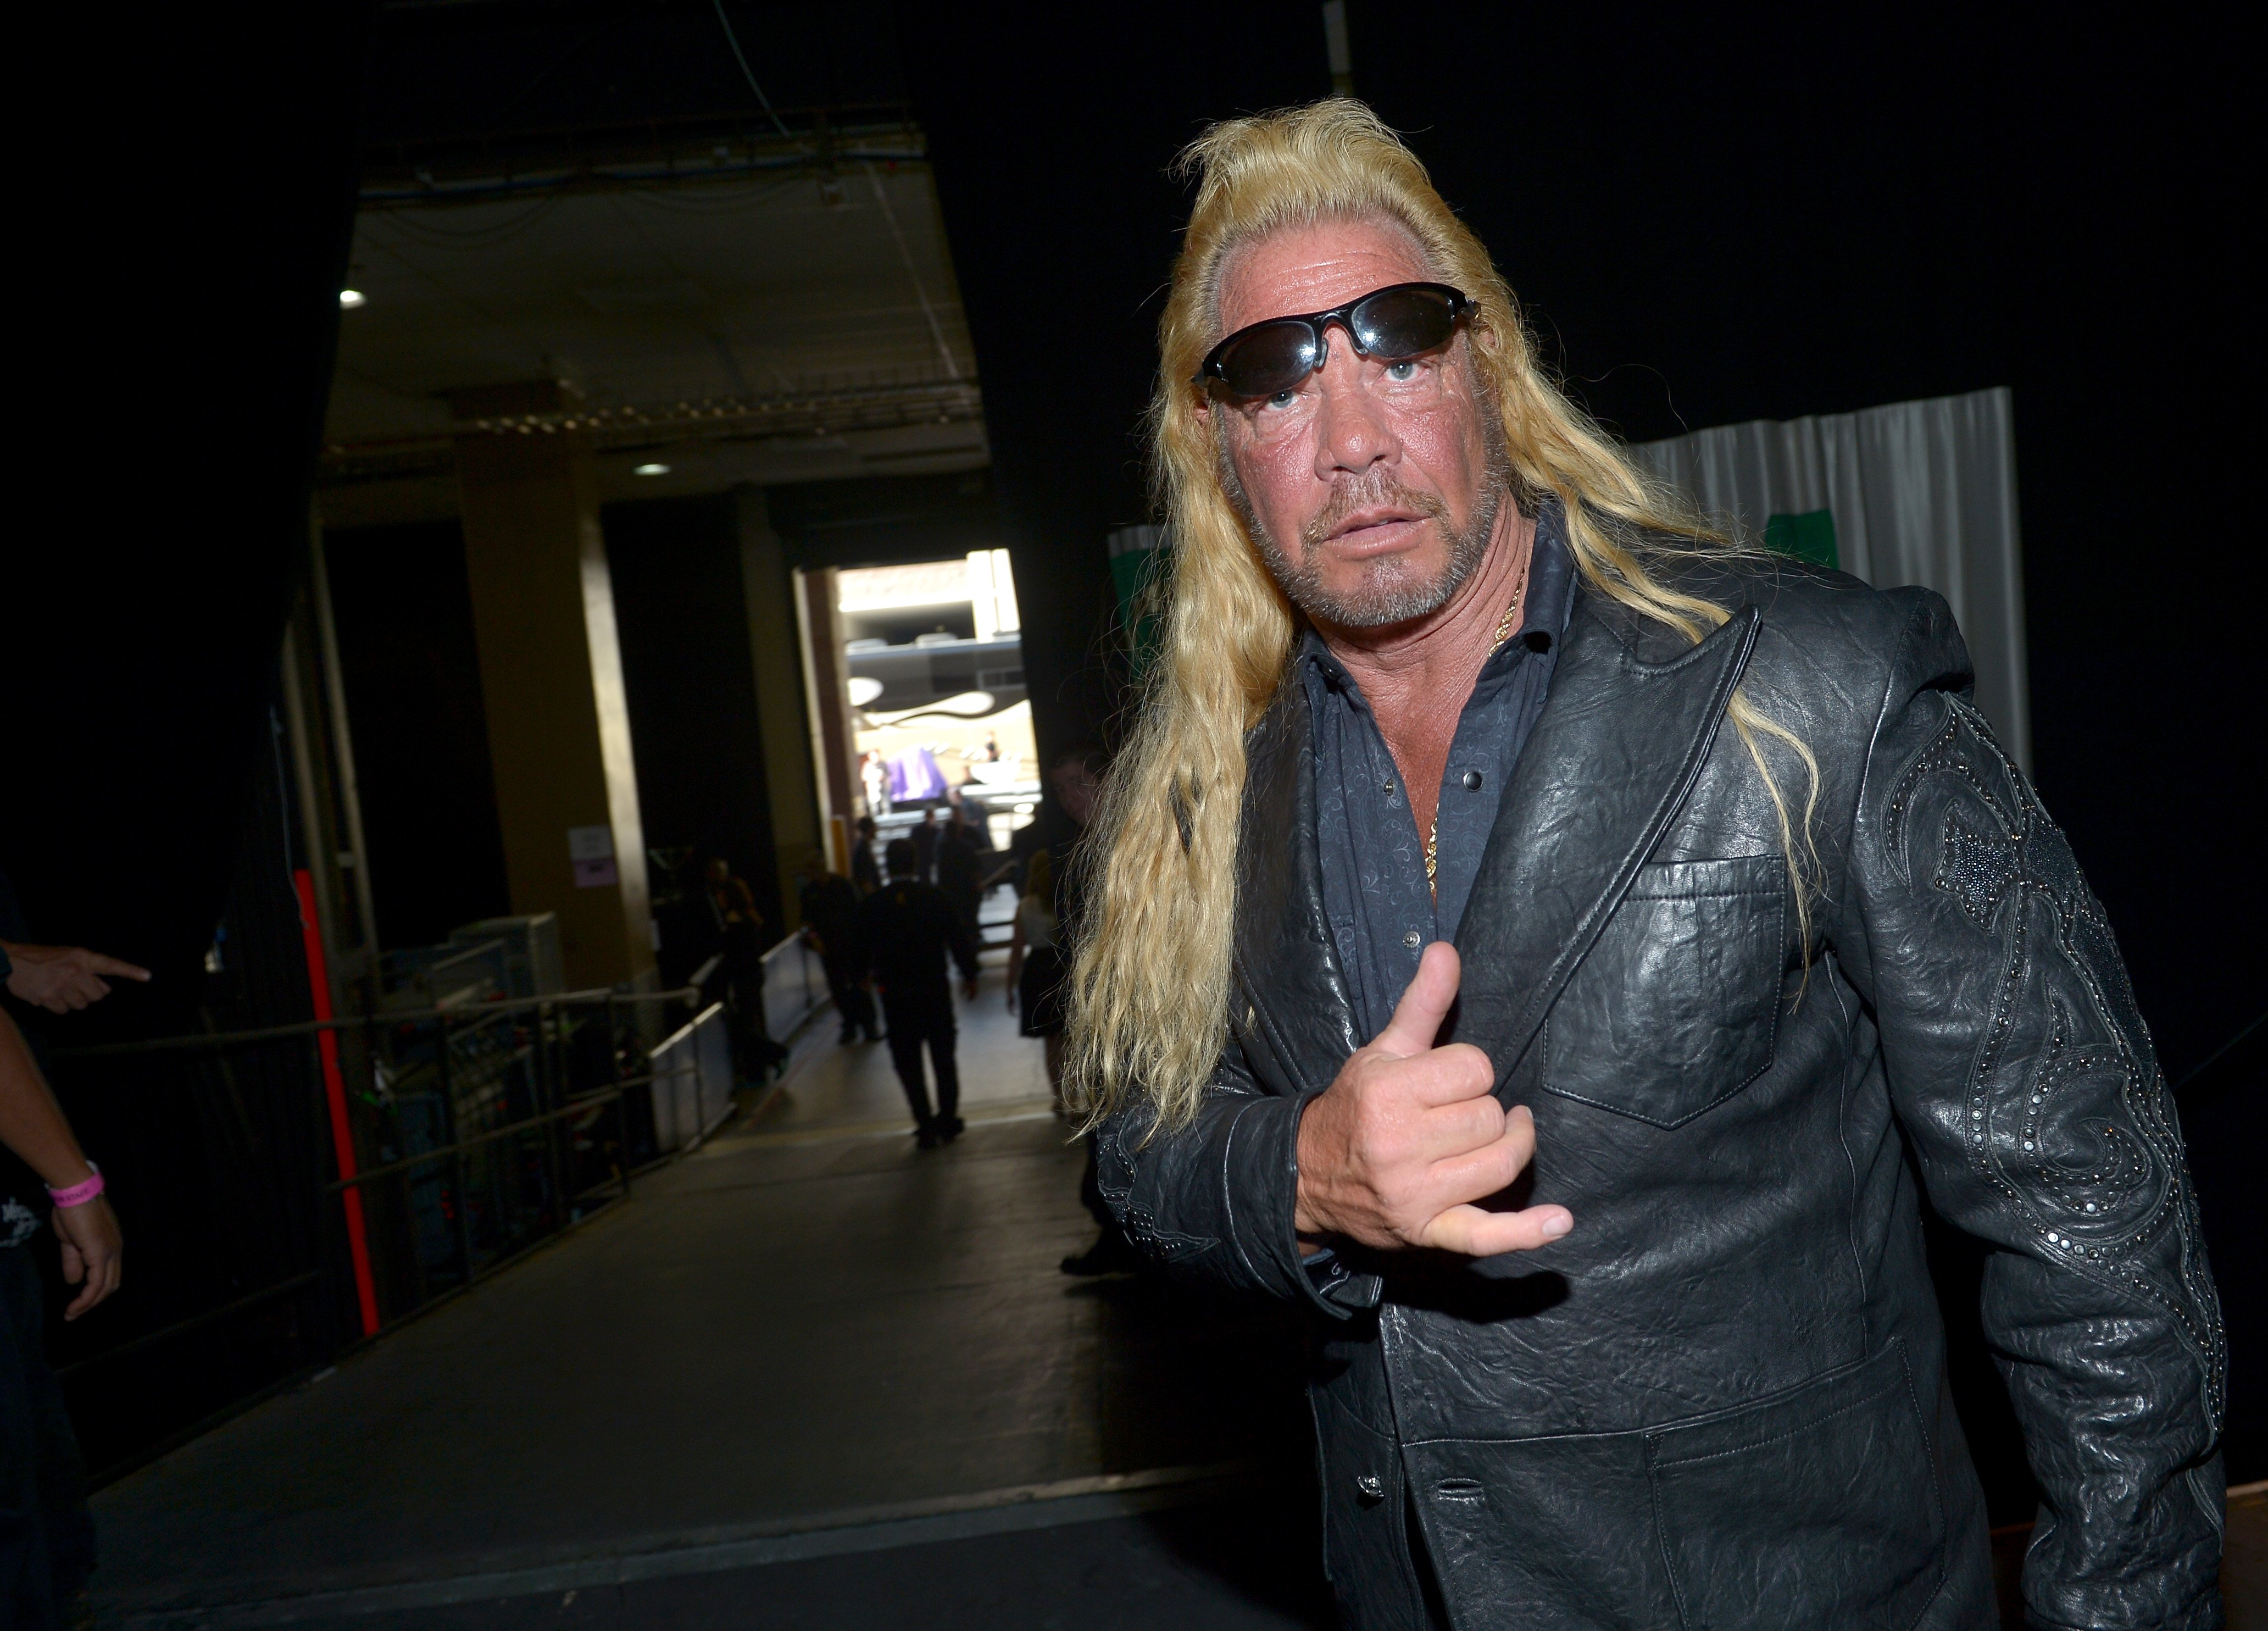 Dog the Bounty Hunter attends the 48th Annual Academy of Country Music Awards at the MGM Grand Garden Arena on April 7, 2013 in Las Vegas, Nevada. | Photo: GettyImages